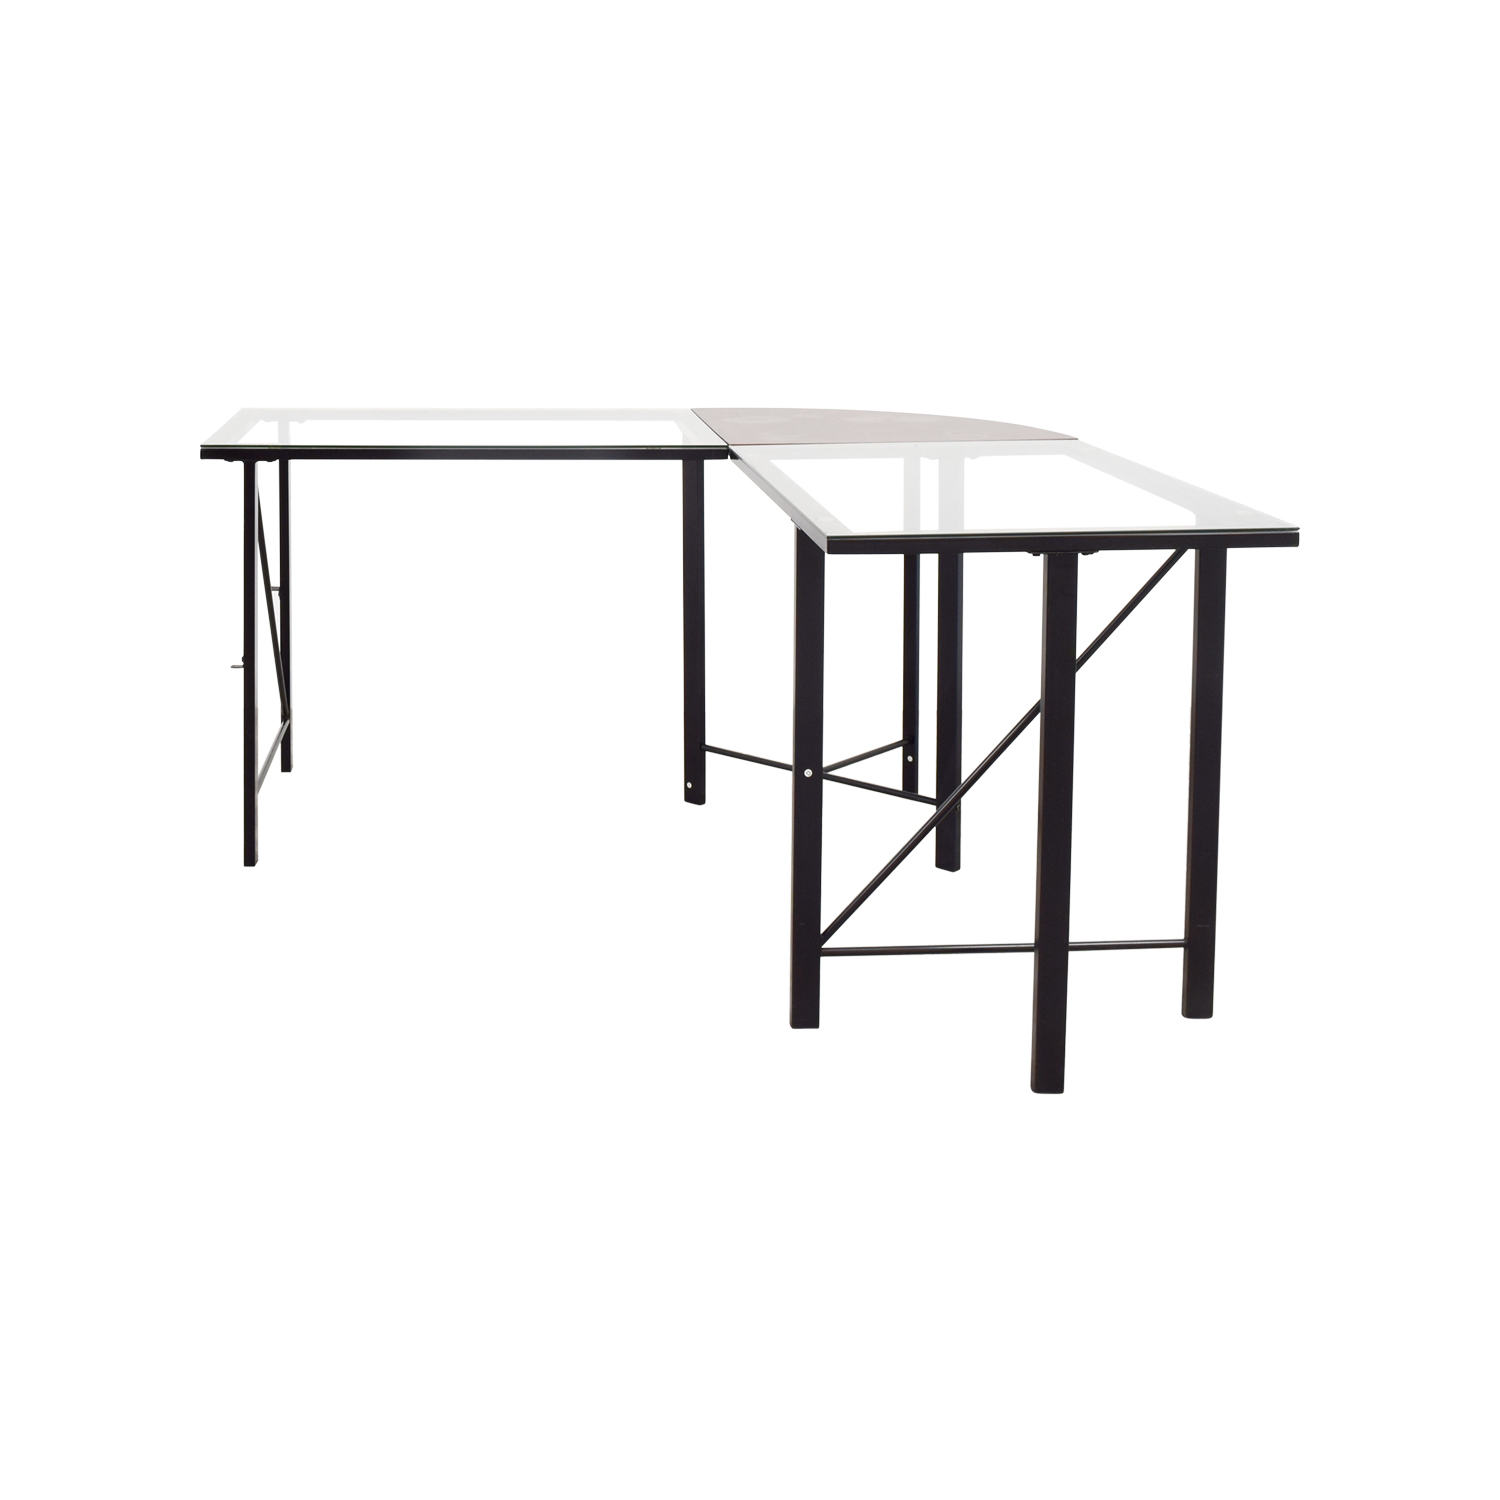 Altra Furniture Altra Furniture Aden Corner Glass Computer Desk price